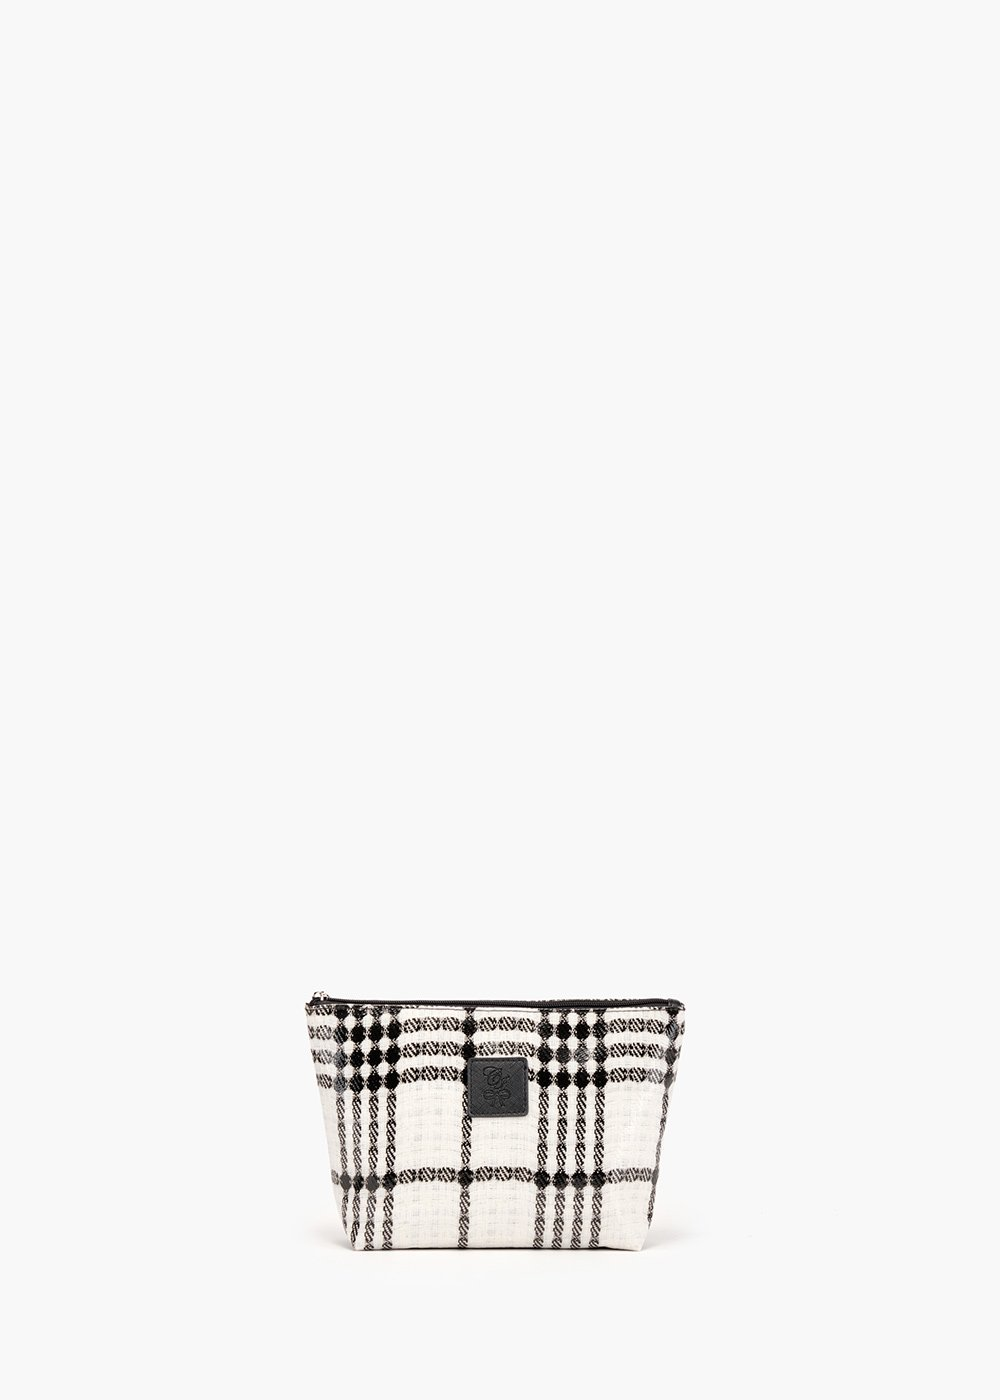 Beauty Bali Tartan in tessuto tartan con chiusura a zip - White / Black Fantasia - Donna